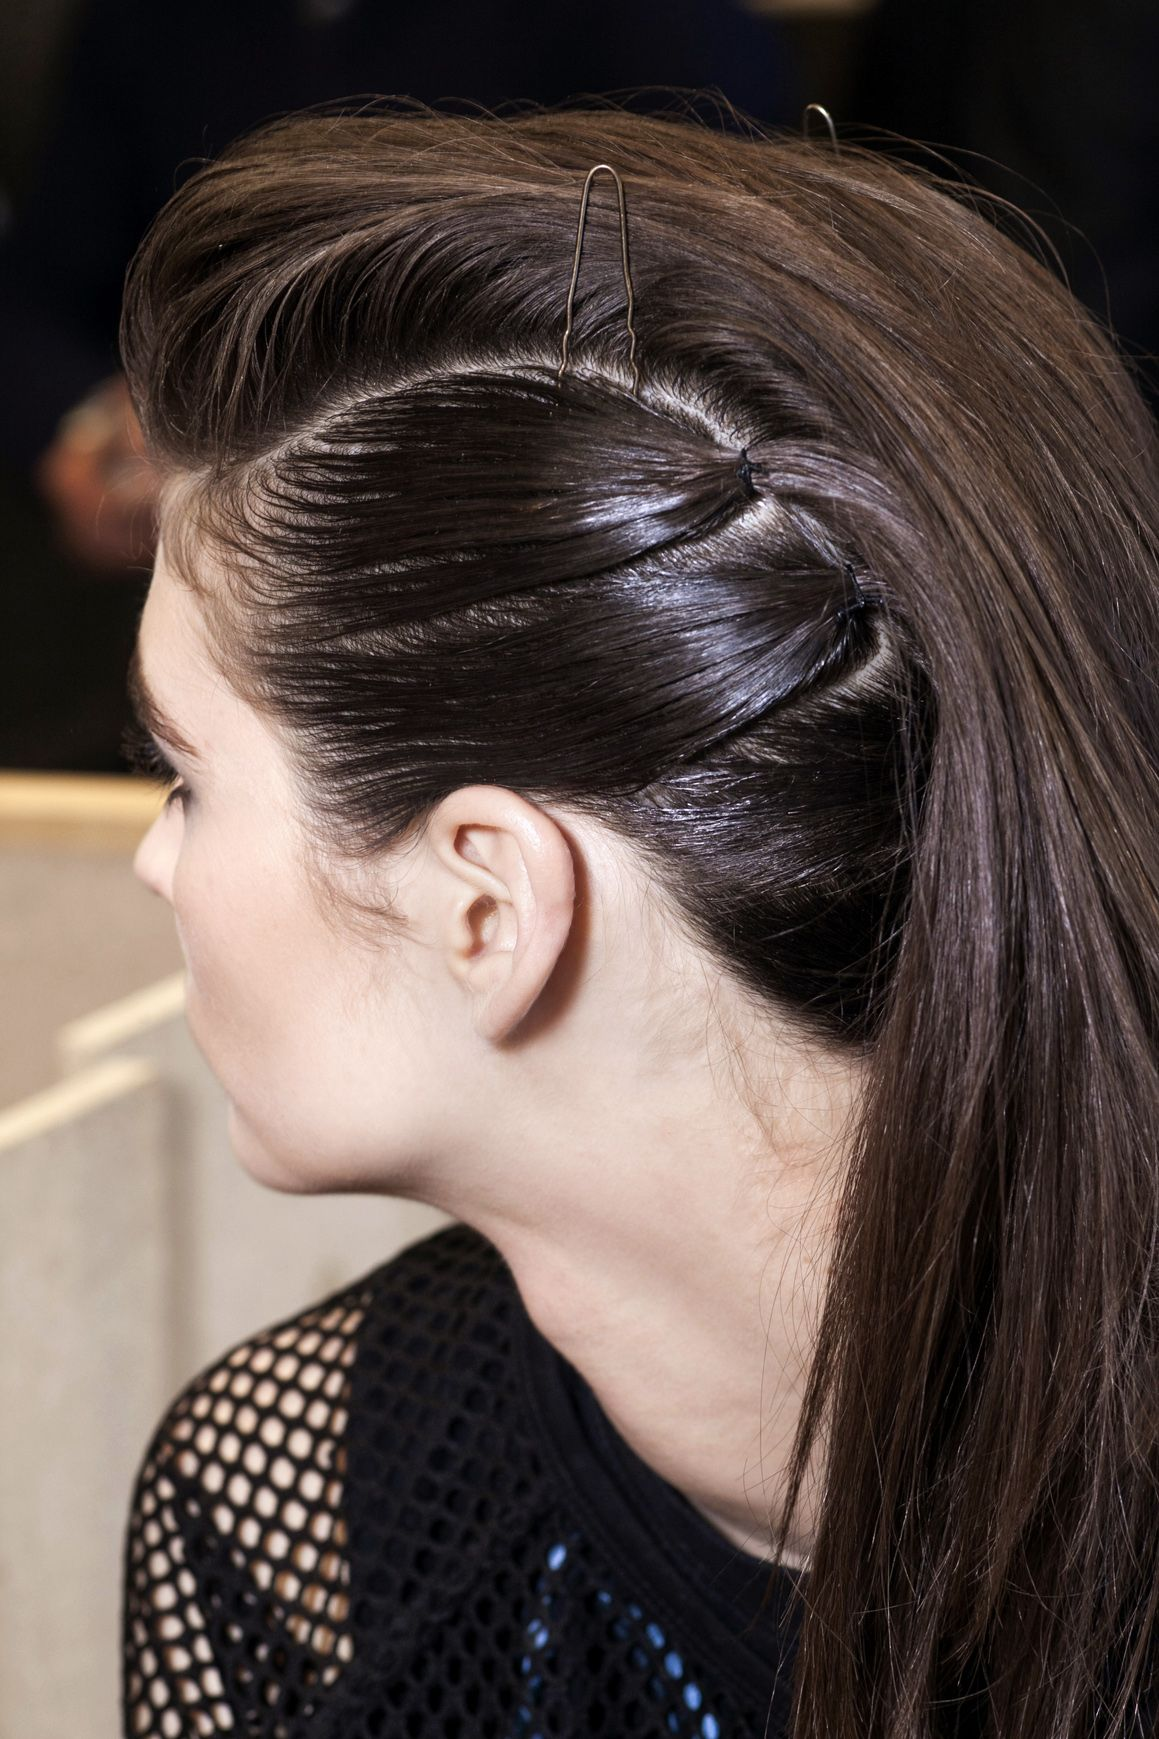 10 Must-Have Hairstyles for the First Day of School